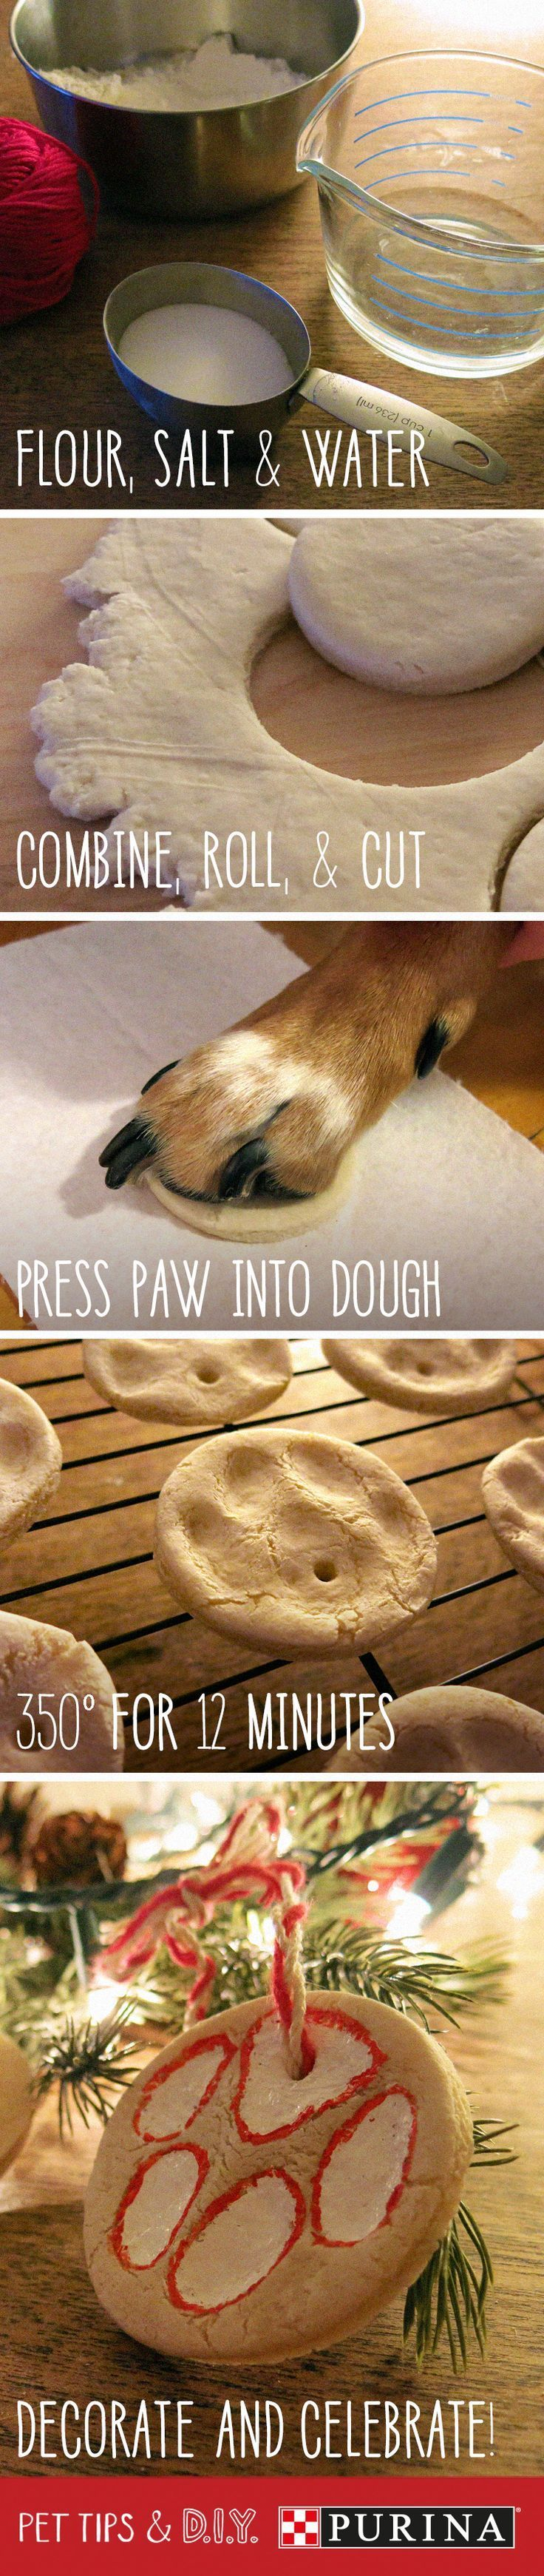 Make a DIY paw print ornament to celebrate the holiday season with your cat or dog. Here's your how-to guide, including a recipe for dough that is safe for pets: Mix together 4 cups of flour, 1 cup of salt, and 1 ½ cups of water, and knead until dough is well combined. Roll out dough and cut into desired shapes. Press your pet's paw into the dough and then bake in a 350-degree F oven for 12 minutes. Let the ornaments cool completely before sprucing them up as you like! #PetLifeHack